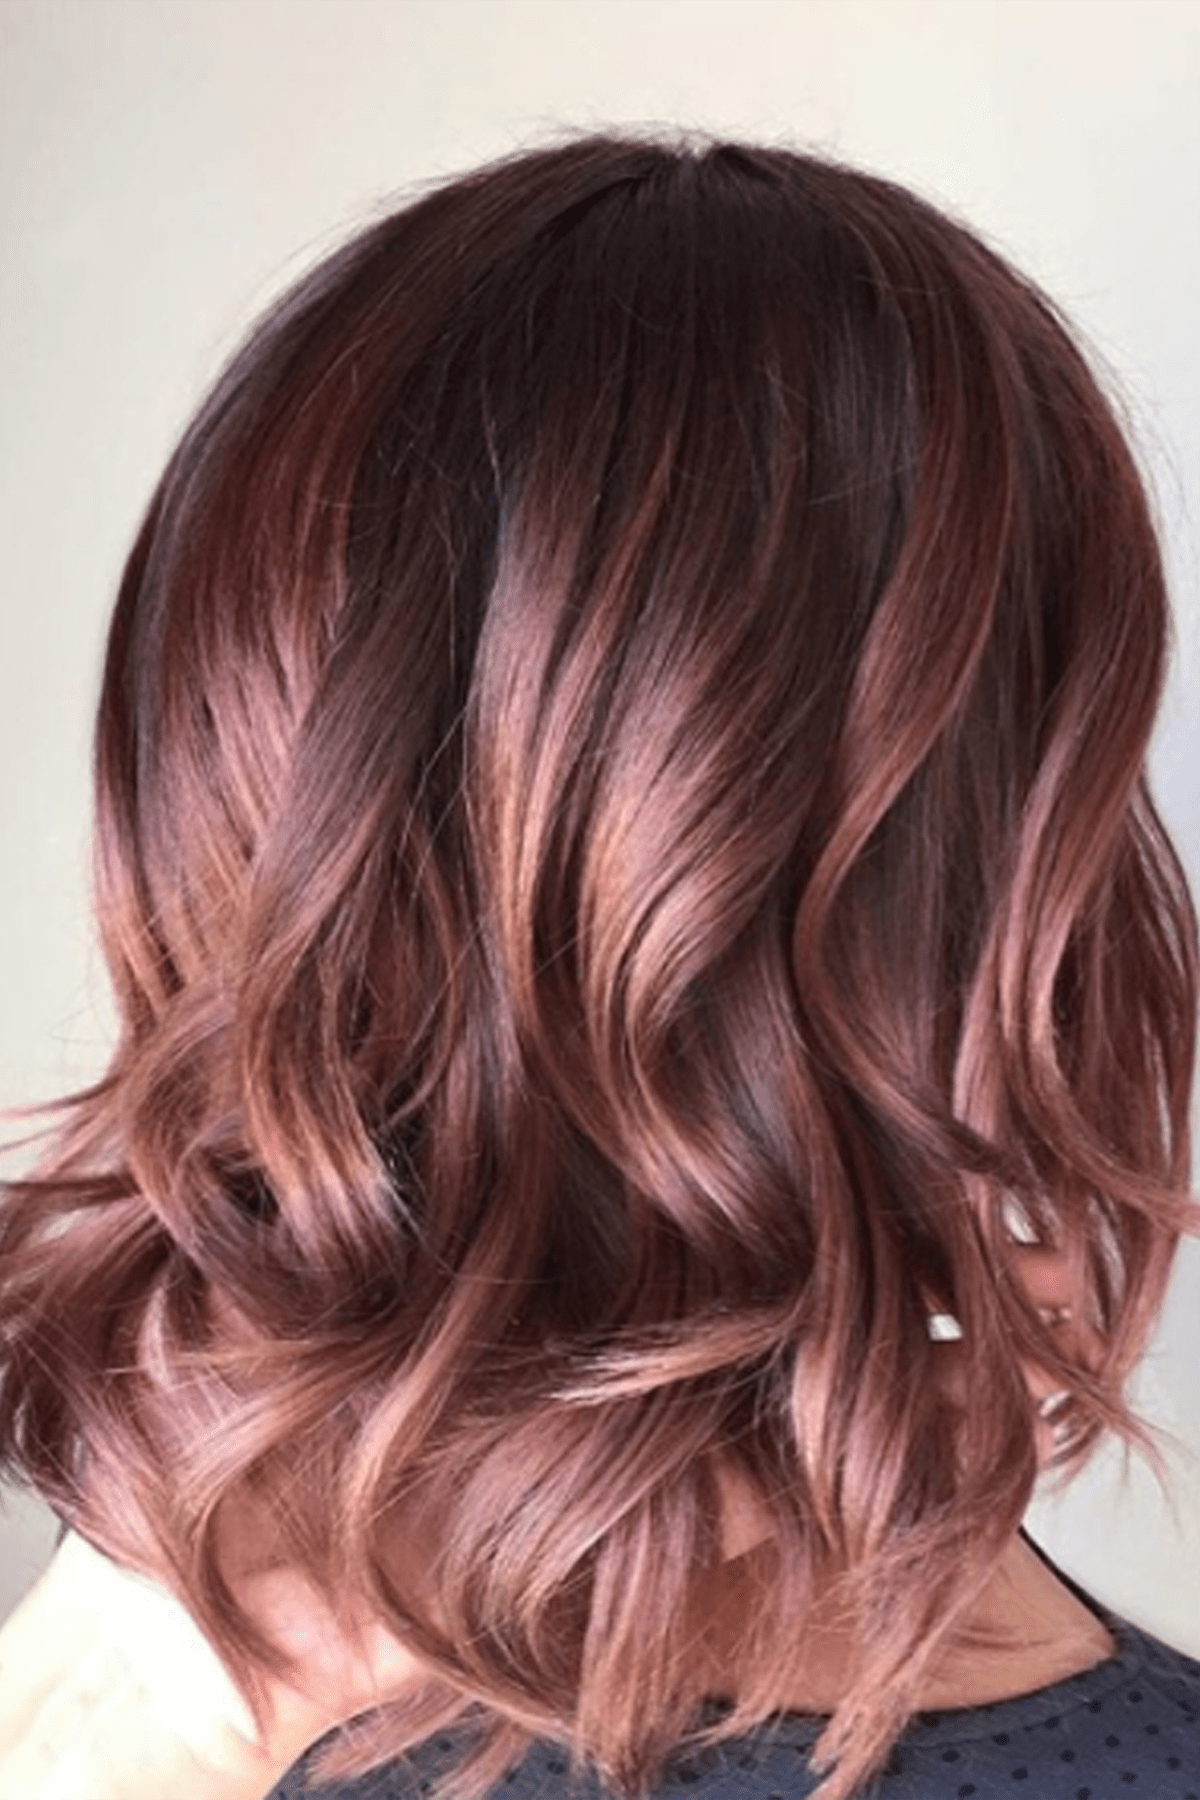 Hair color ideas also and styles for best colors products rh womansday